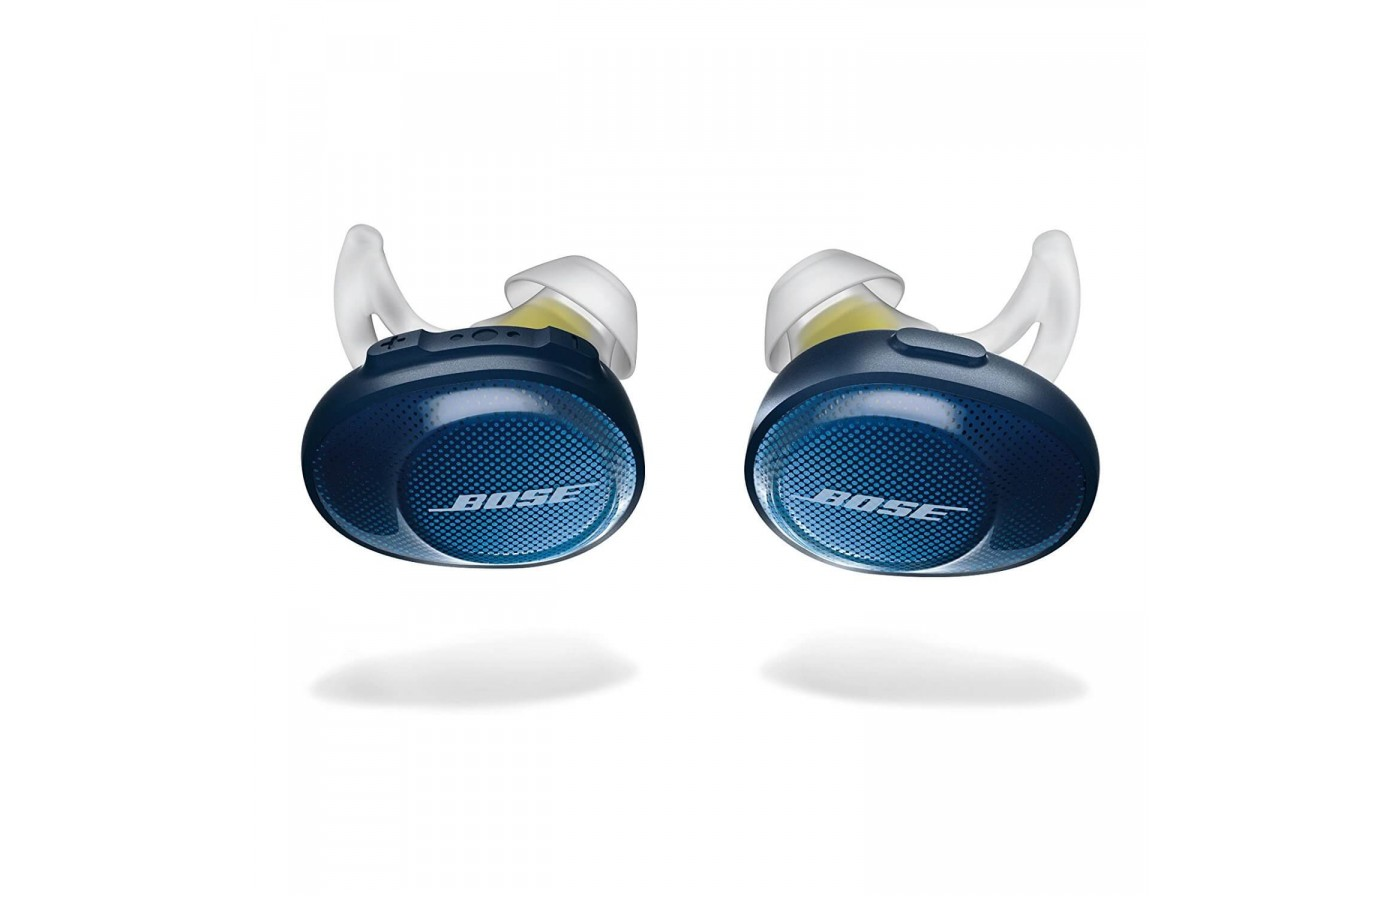 The Bose SoundSport Free headphones are water resistant (IPX4 rating)